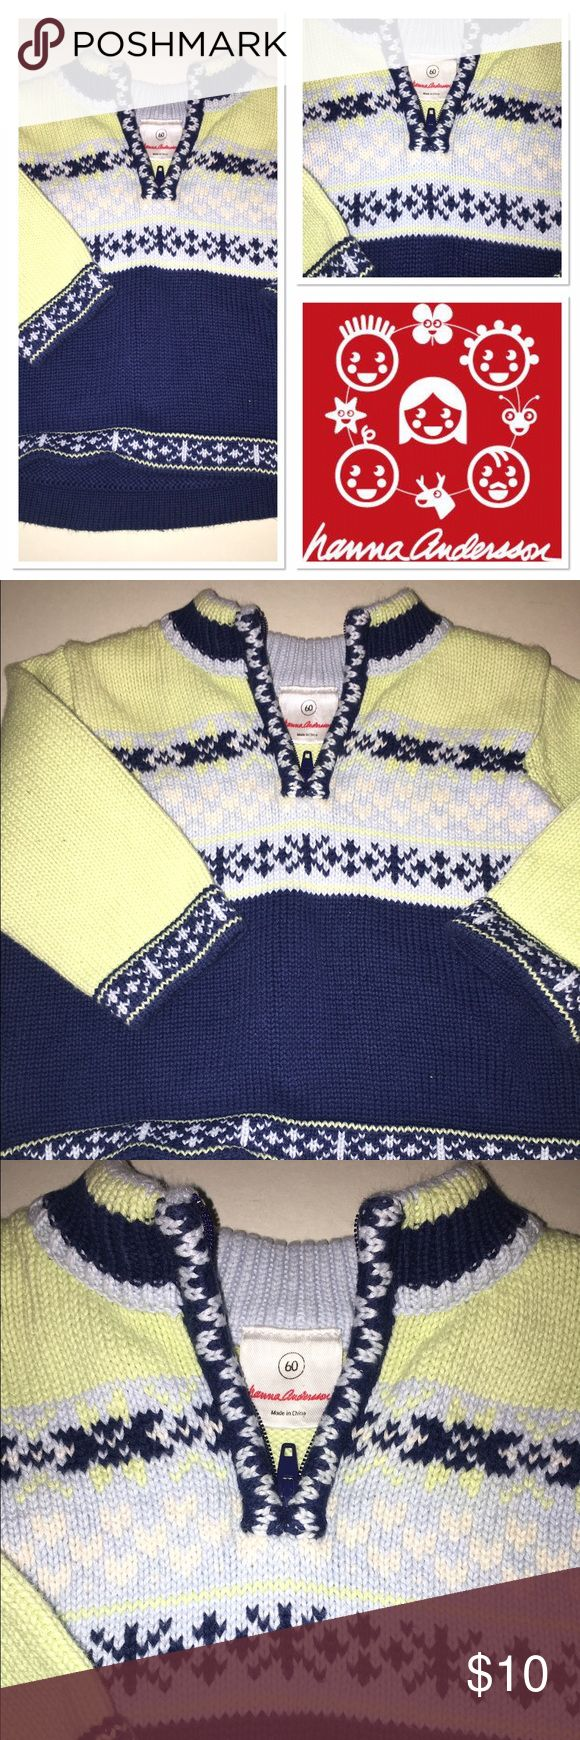 Hanna Andersson little boy sweater Perfect condition size 60 little boys sweater Hanna Andersson Shirts & Tops Sweaters